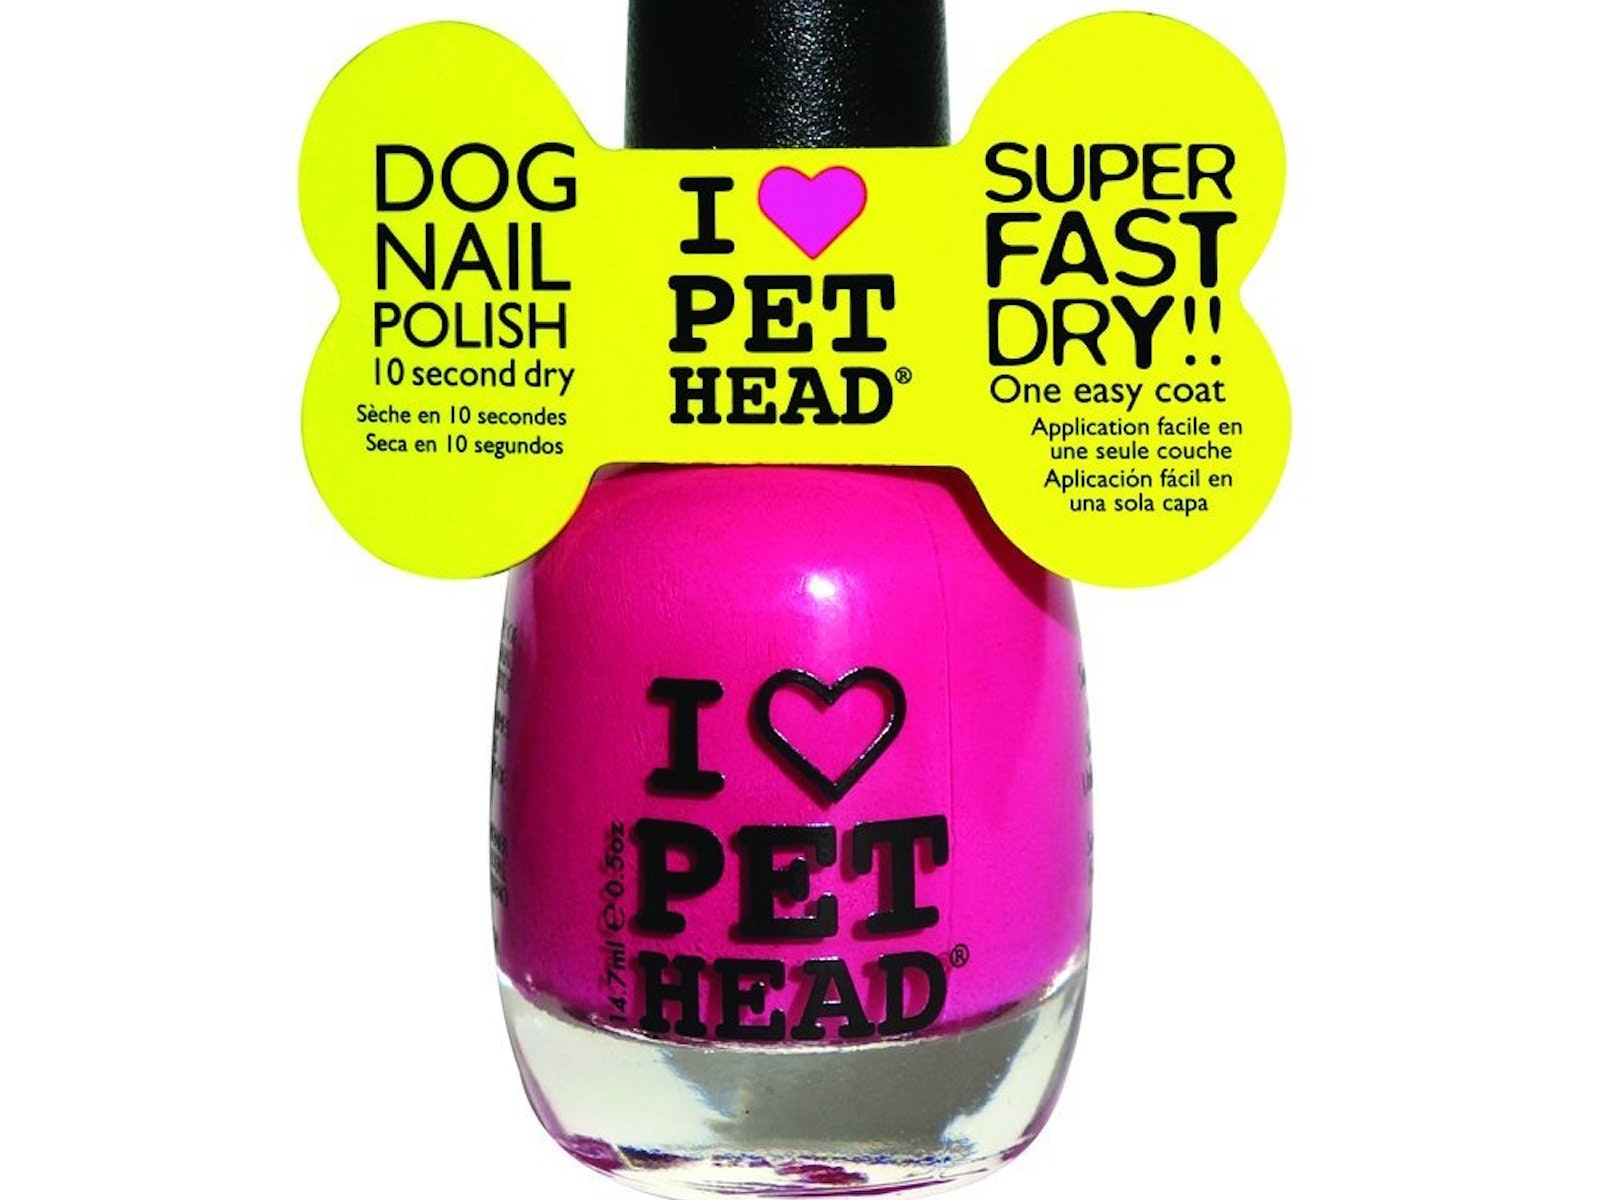 This fast-drying nail polish for puppies